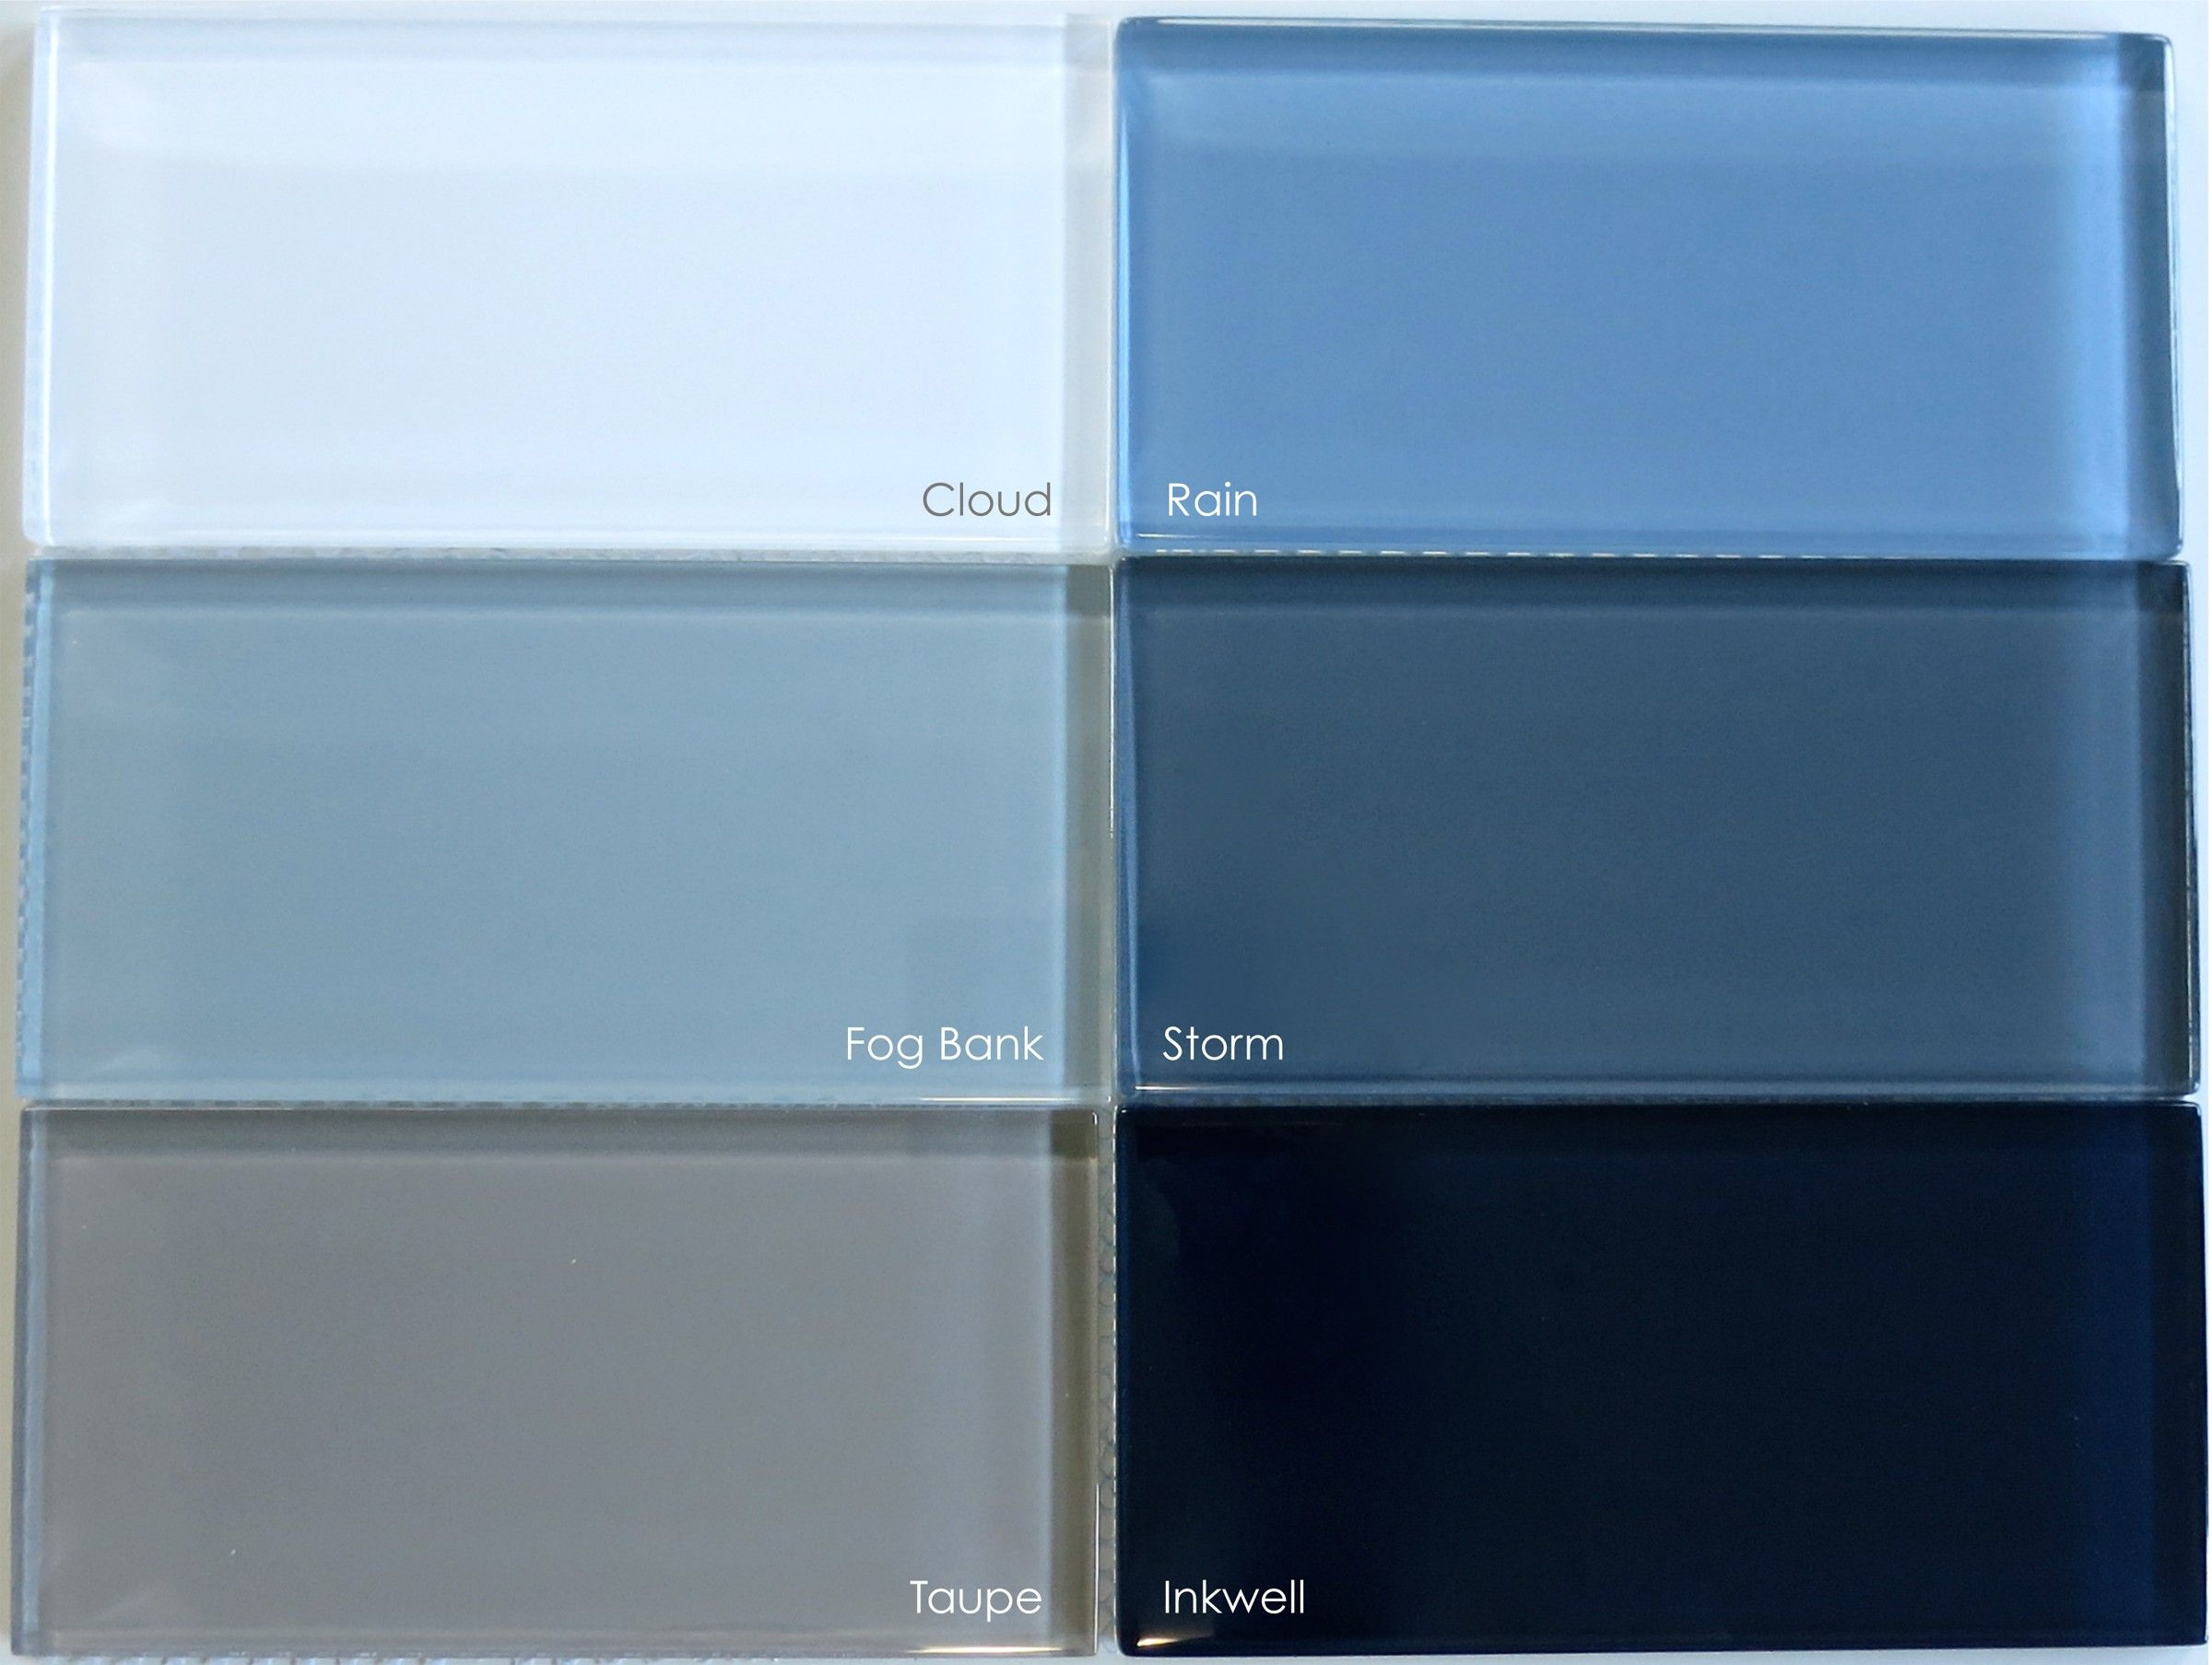 Lush Ready® Glass Subway Tile - Fog Bank 4x12 | Gray subway tiles ...